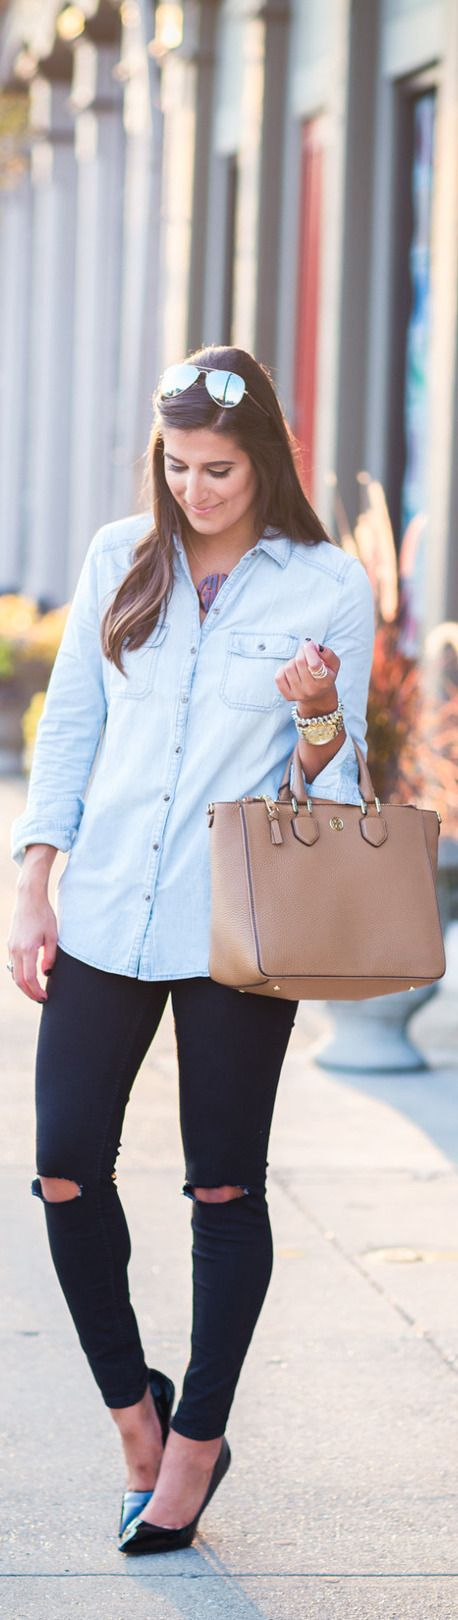 Chambray Shirt / Fashion By A Southern Drawl